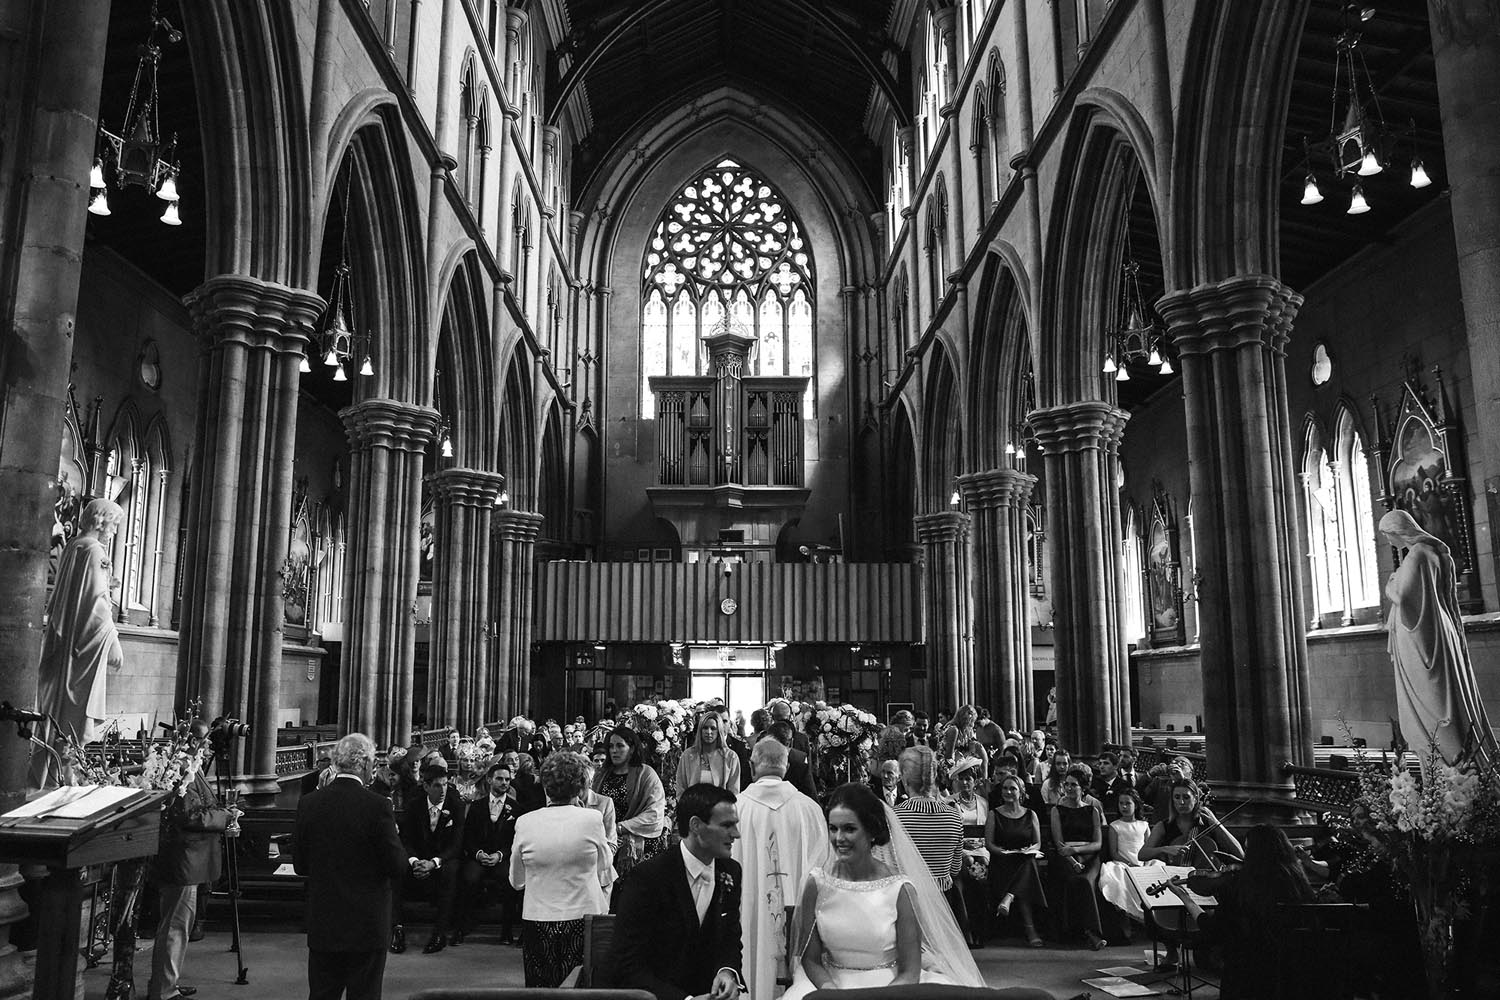 Wide interior shot of Kilkenny Cathedral during a wedding